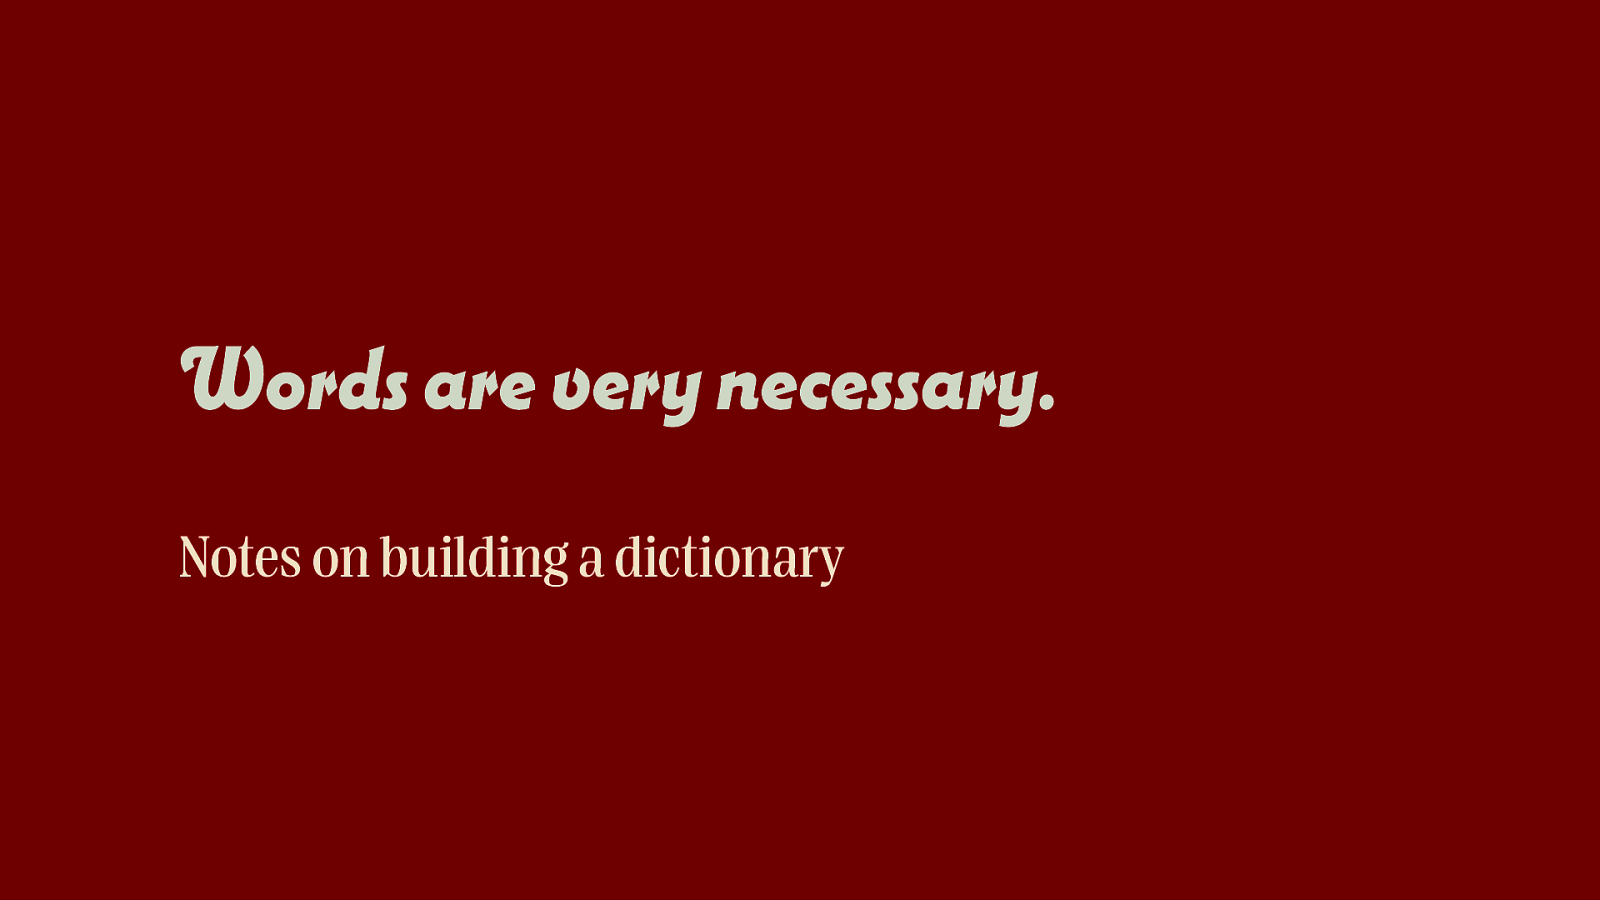 Words are very necessary – Notes on building a dictionary